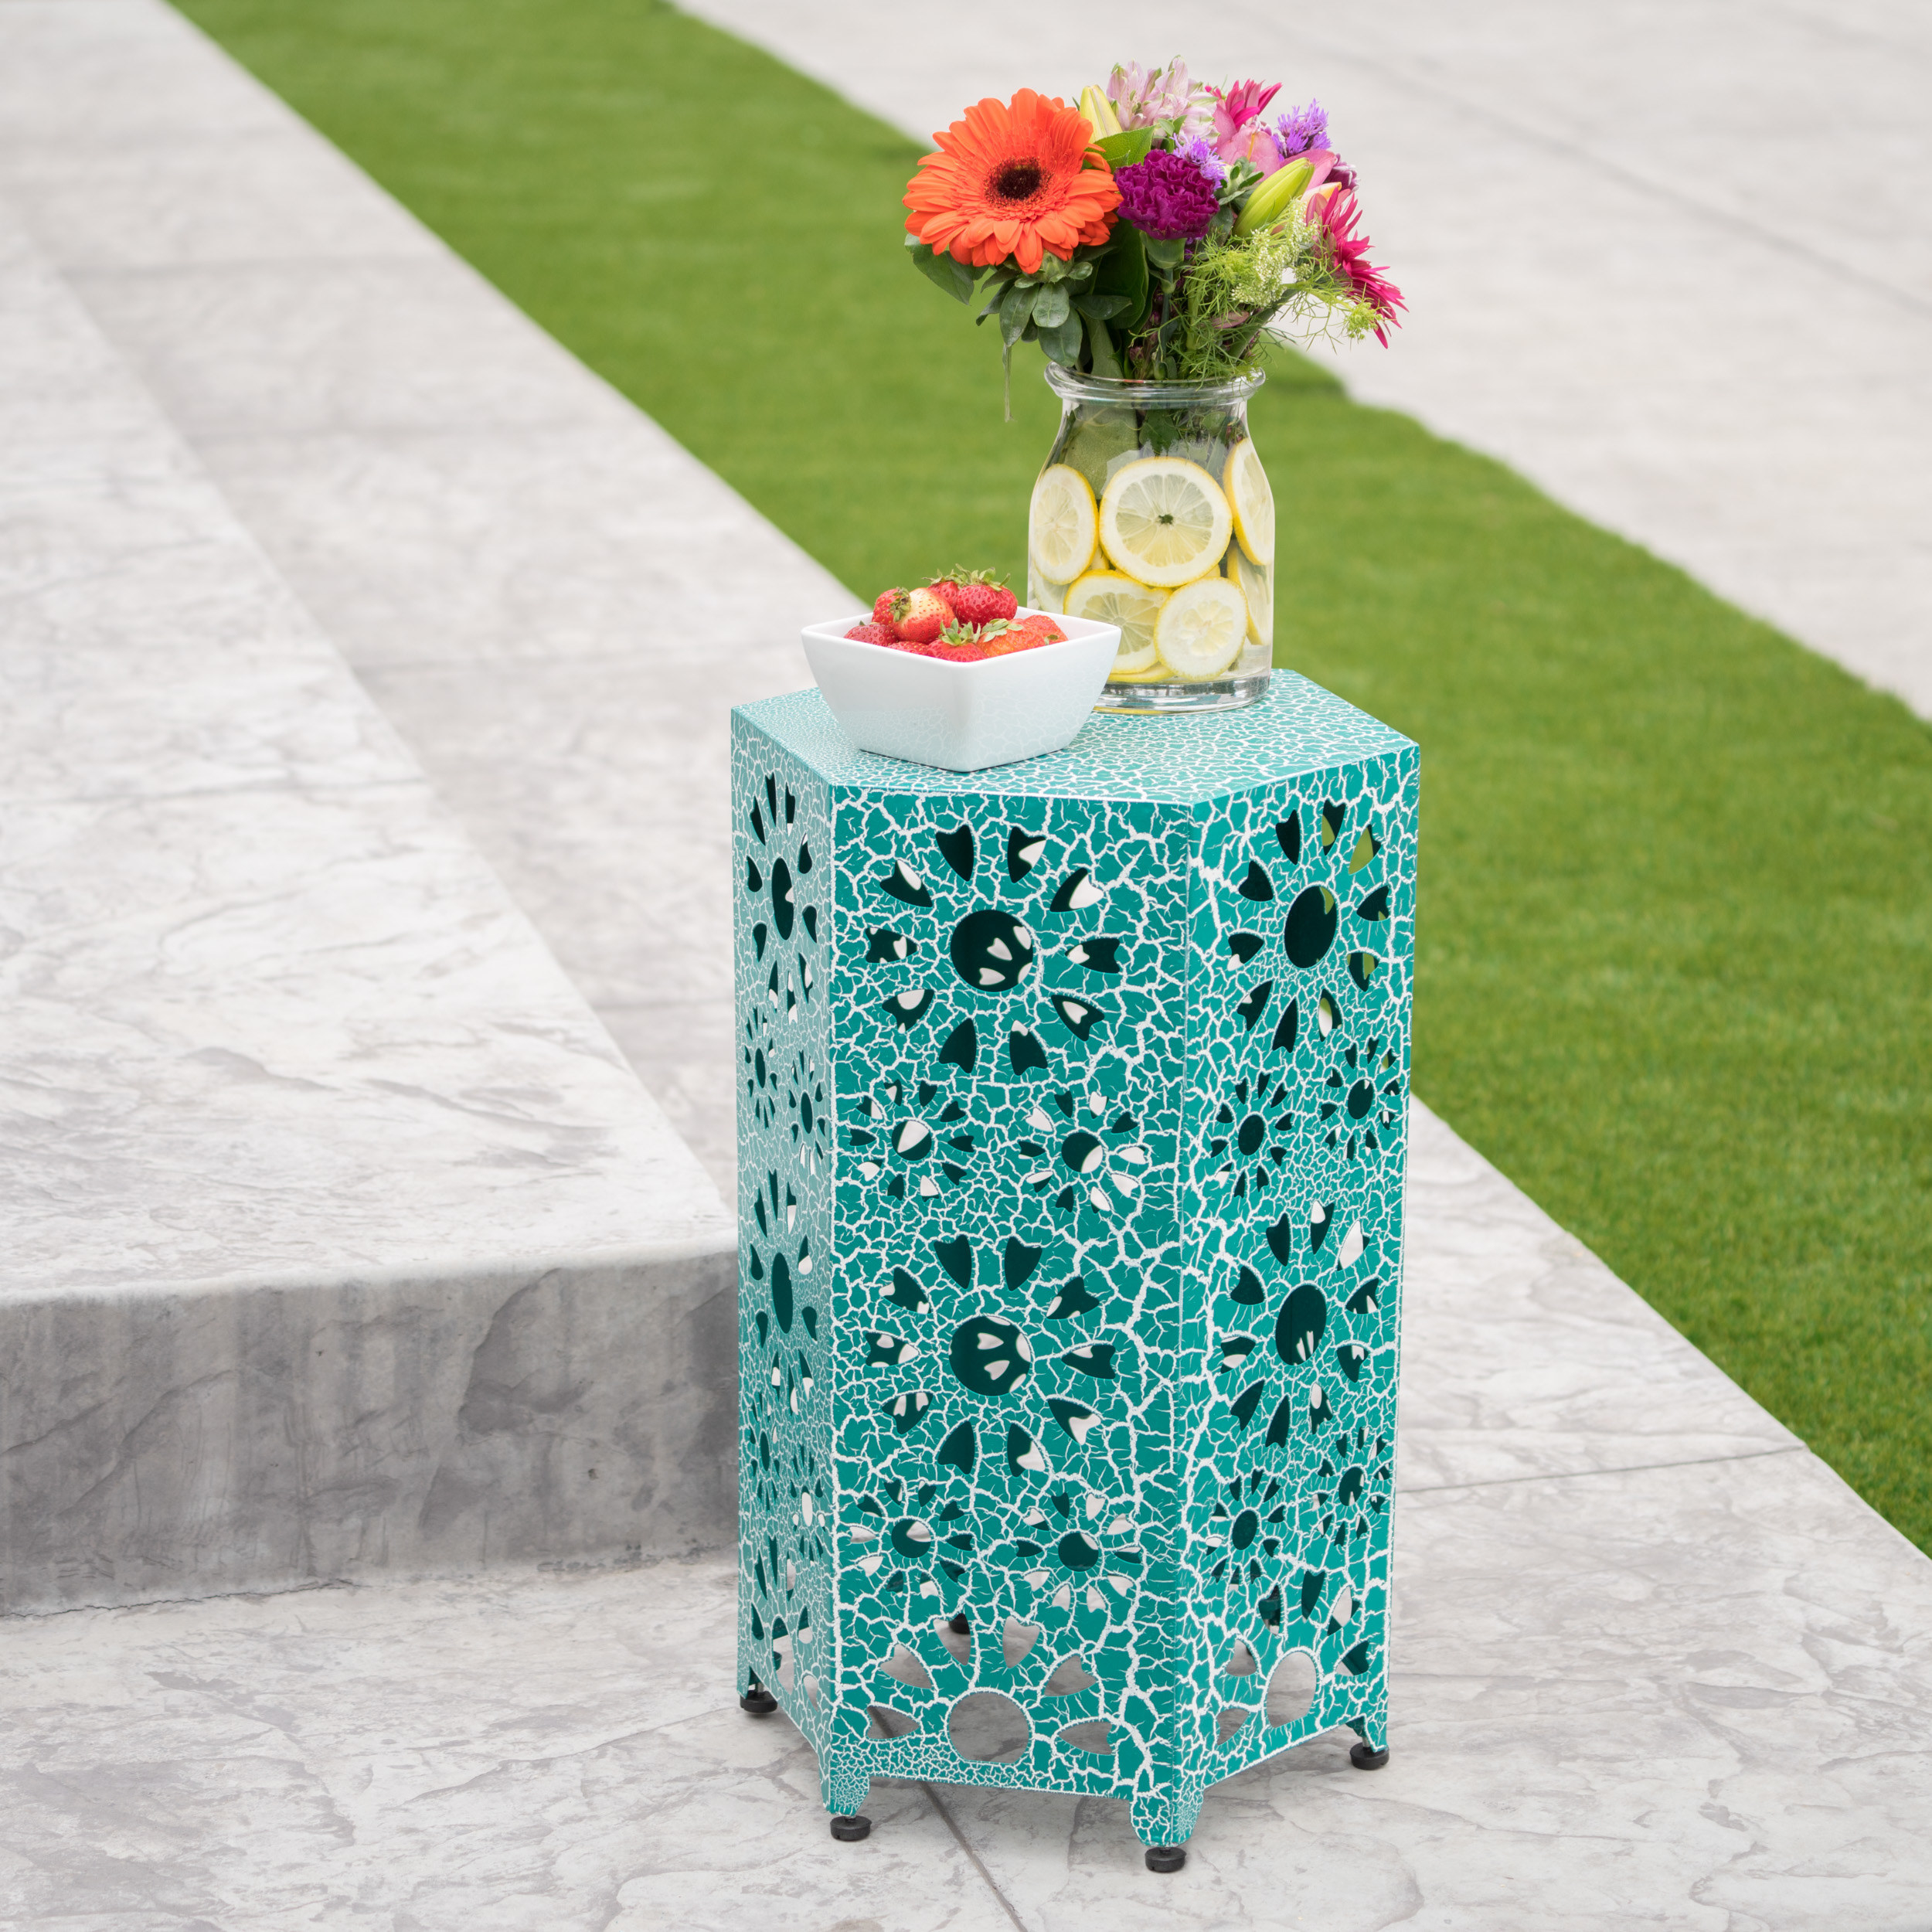 a turquoise table with sun-like cut outs throughout